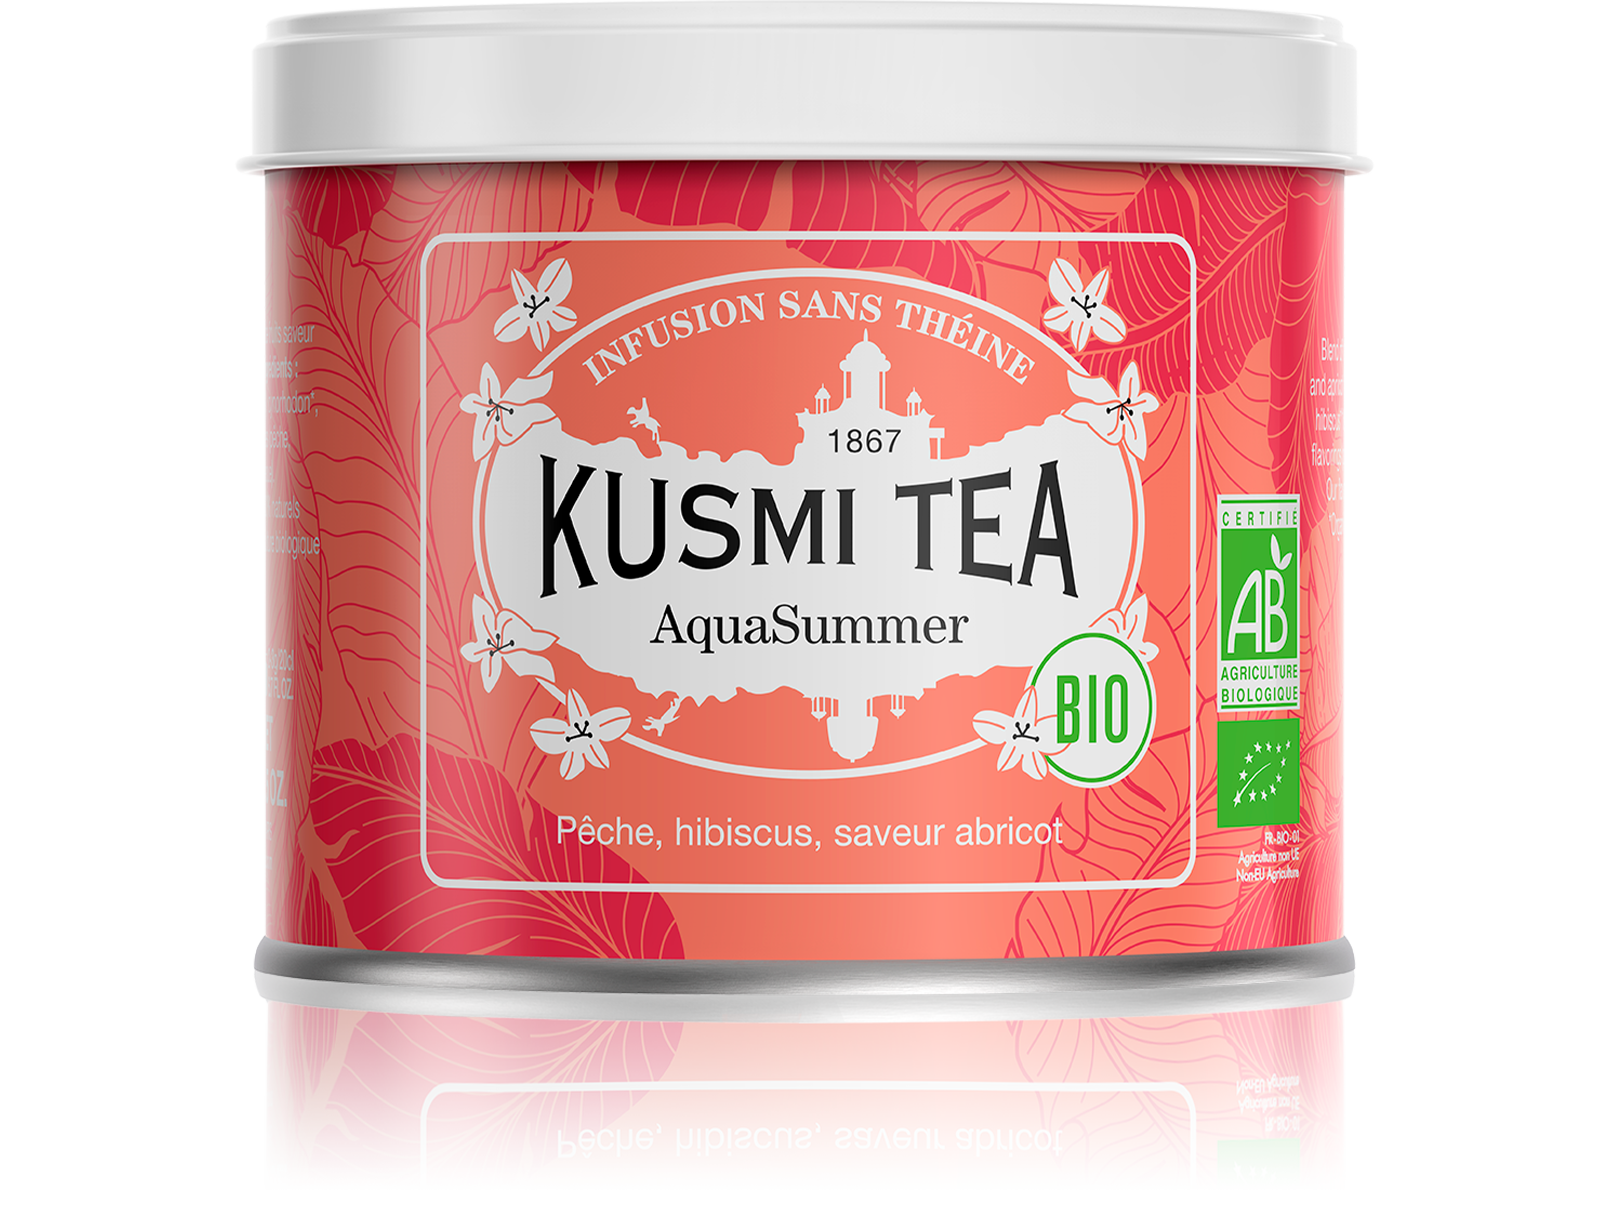 Infusion - AquaSummer (Infusion de fruits bio) - Kusmi Tea